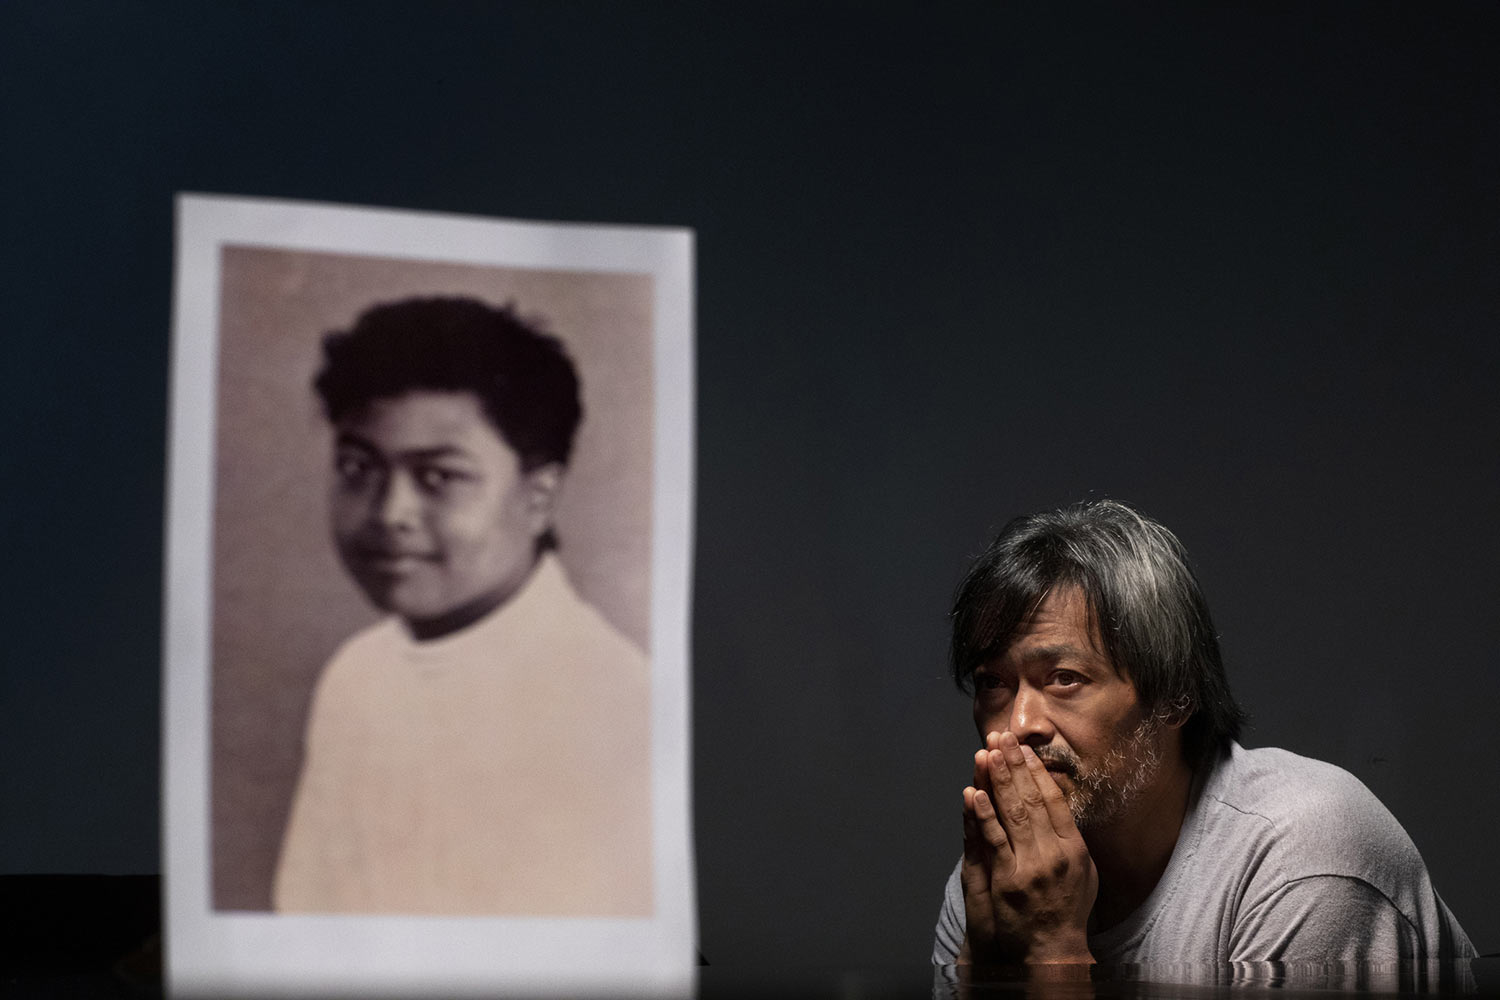 Mark Apuron, 45, sits behind a photo of himself when he was 15 years old. (AP Photo/David Goldman)